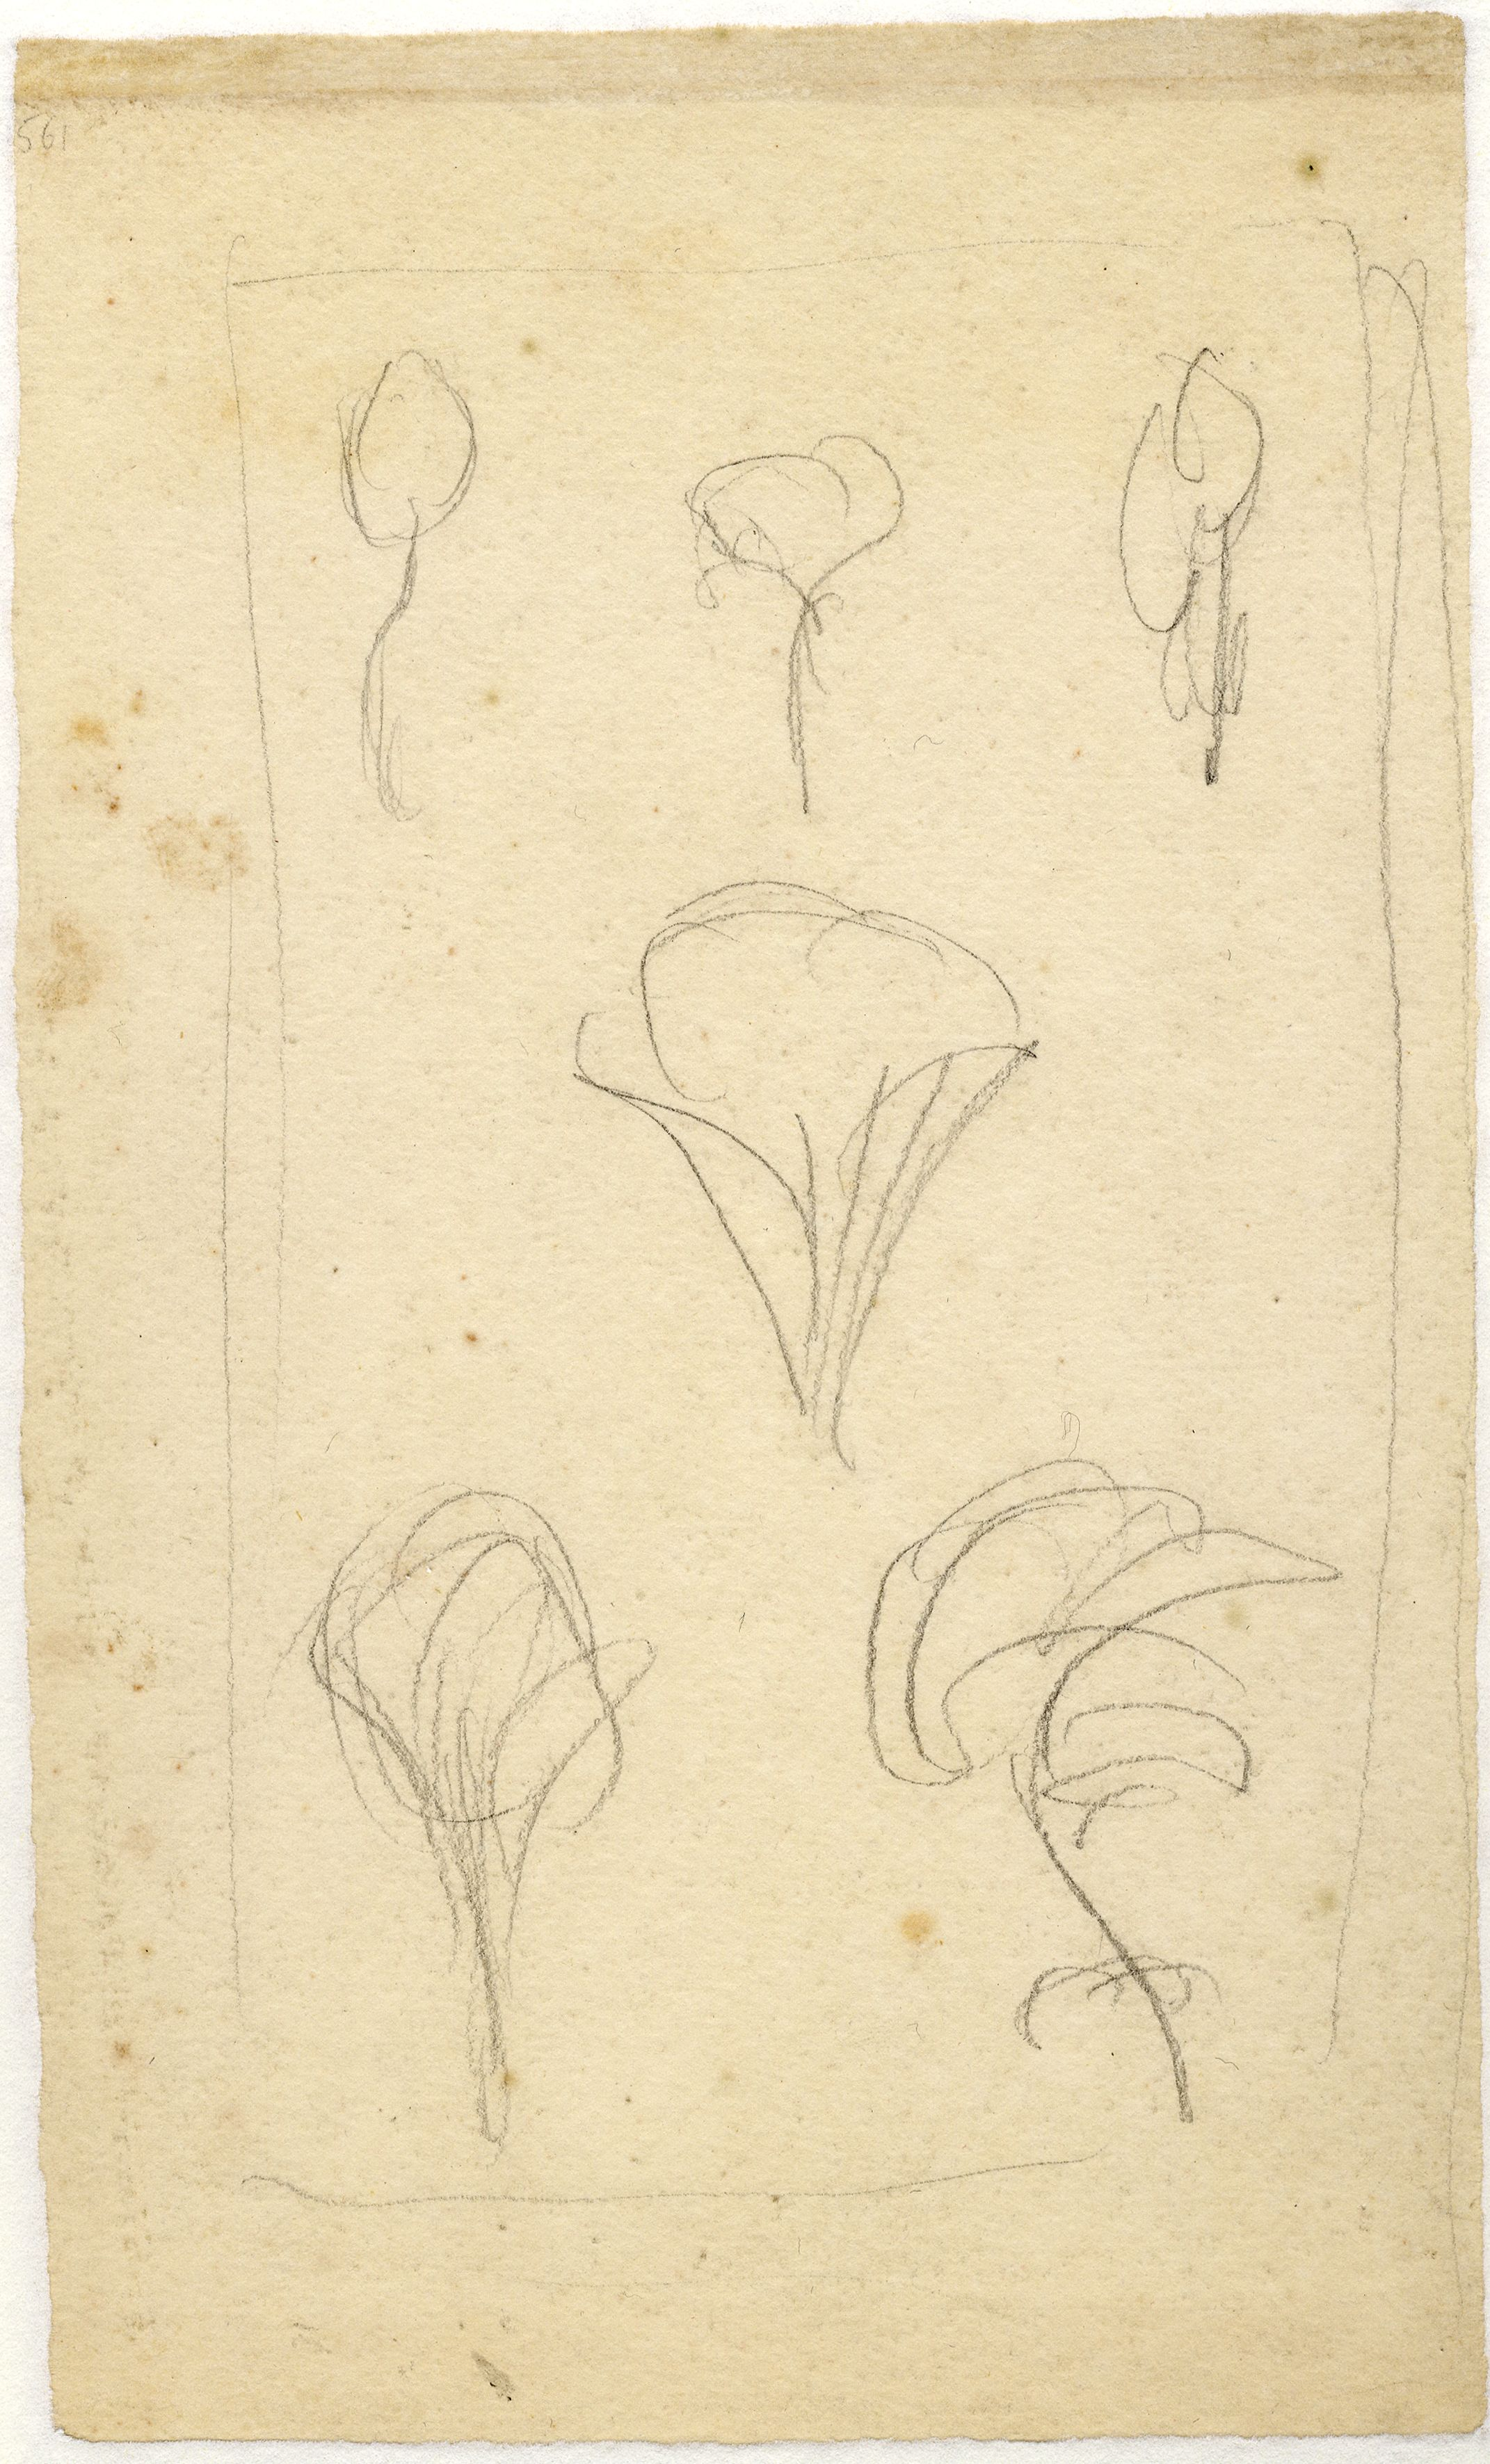 John Ruskin, The shape of trees as depicted by various artists, c 1855-56, RF1561v © Ruskin Foundation